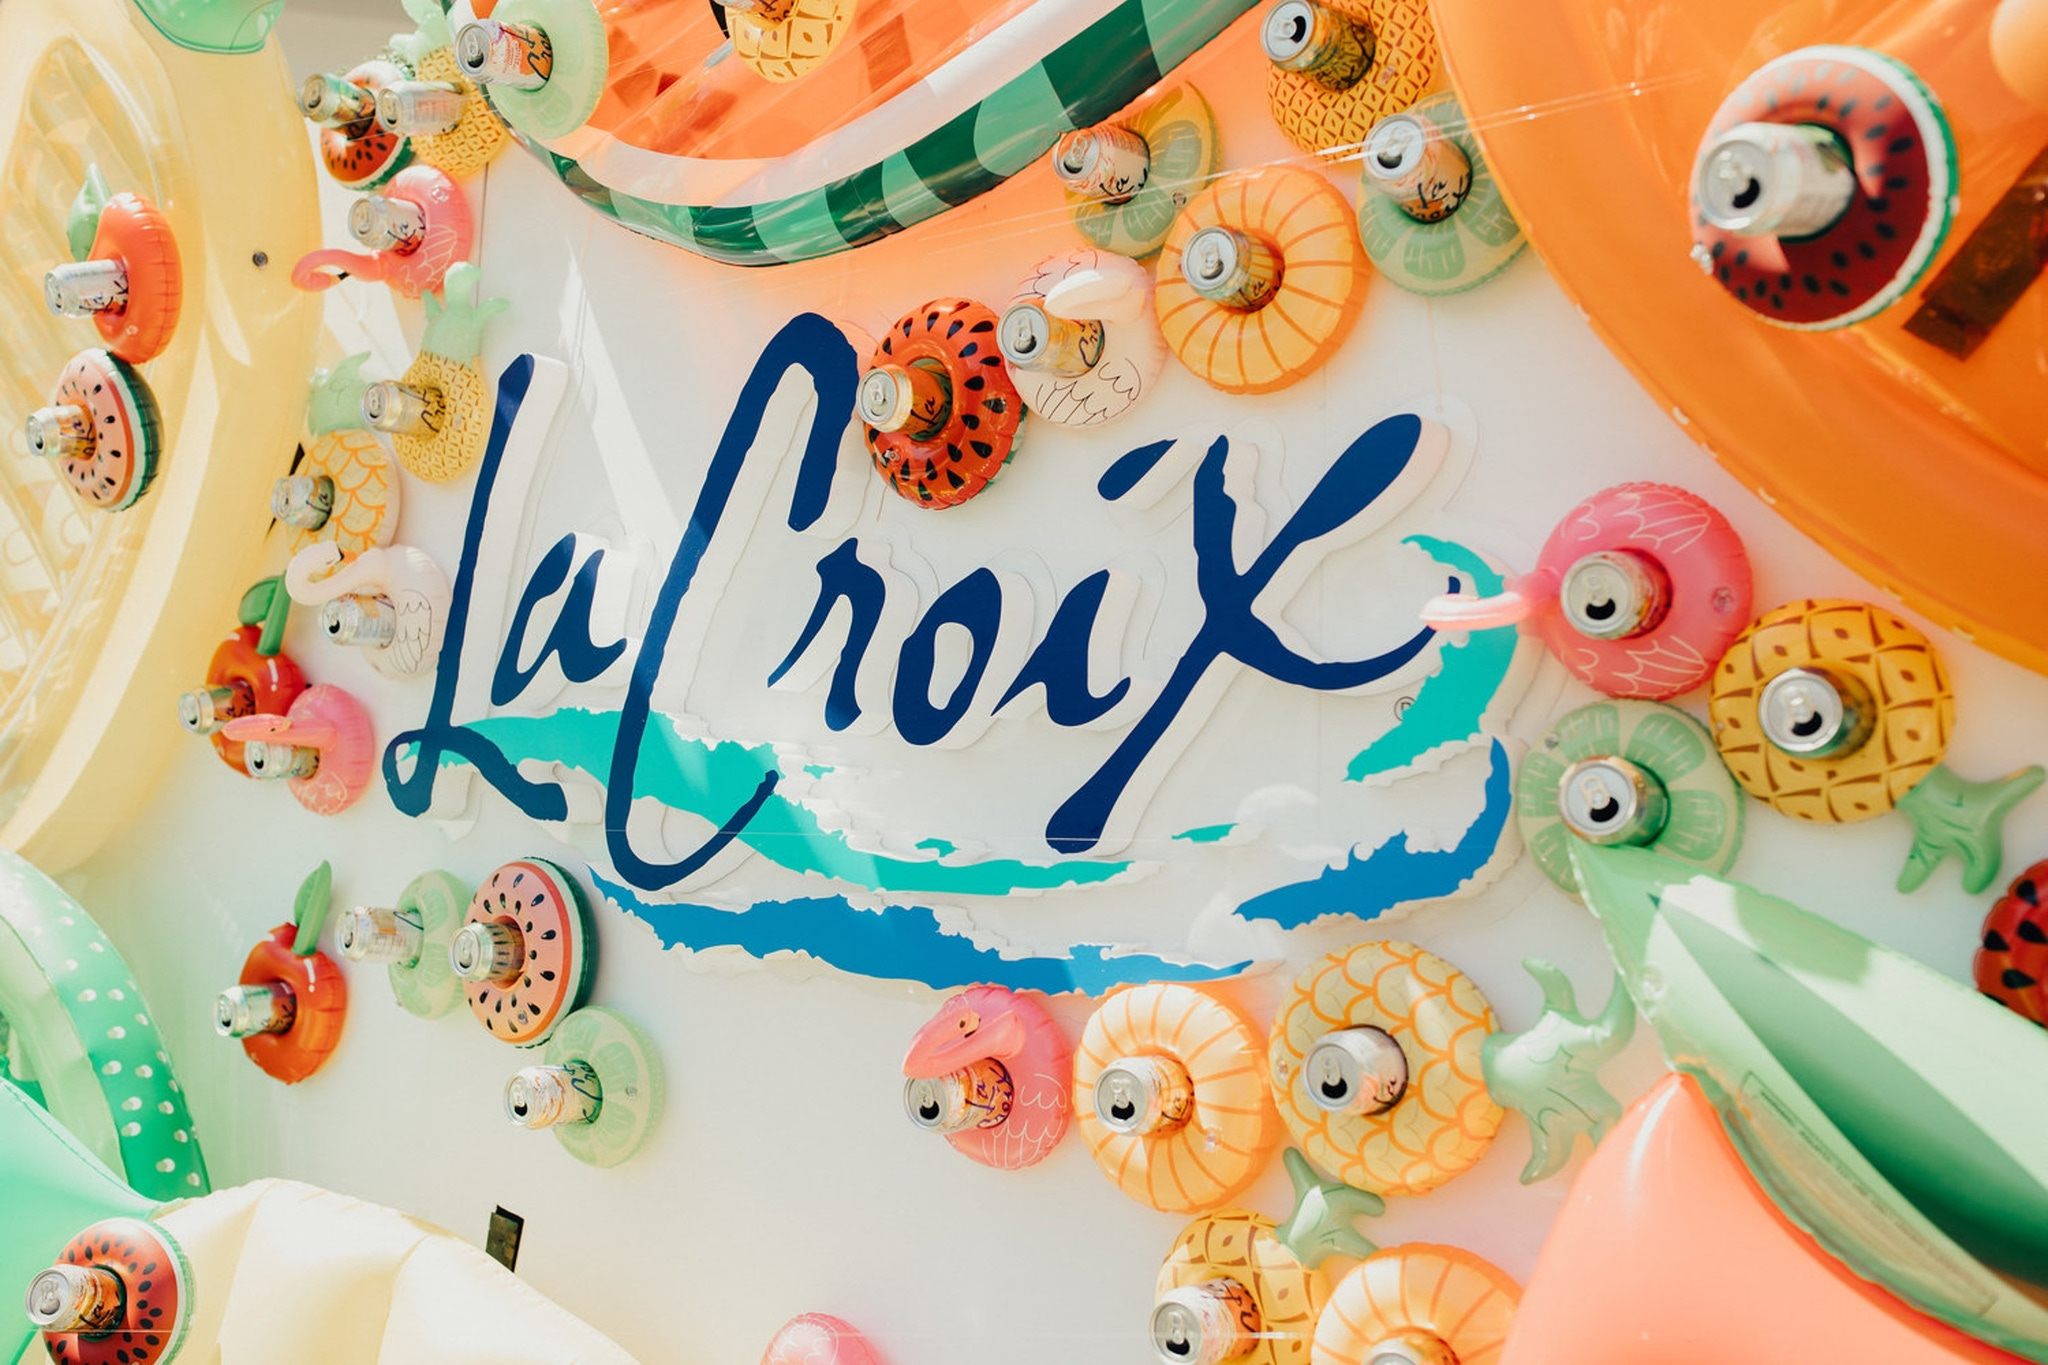 LaCroix photo wall